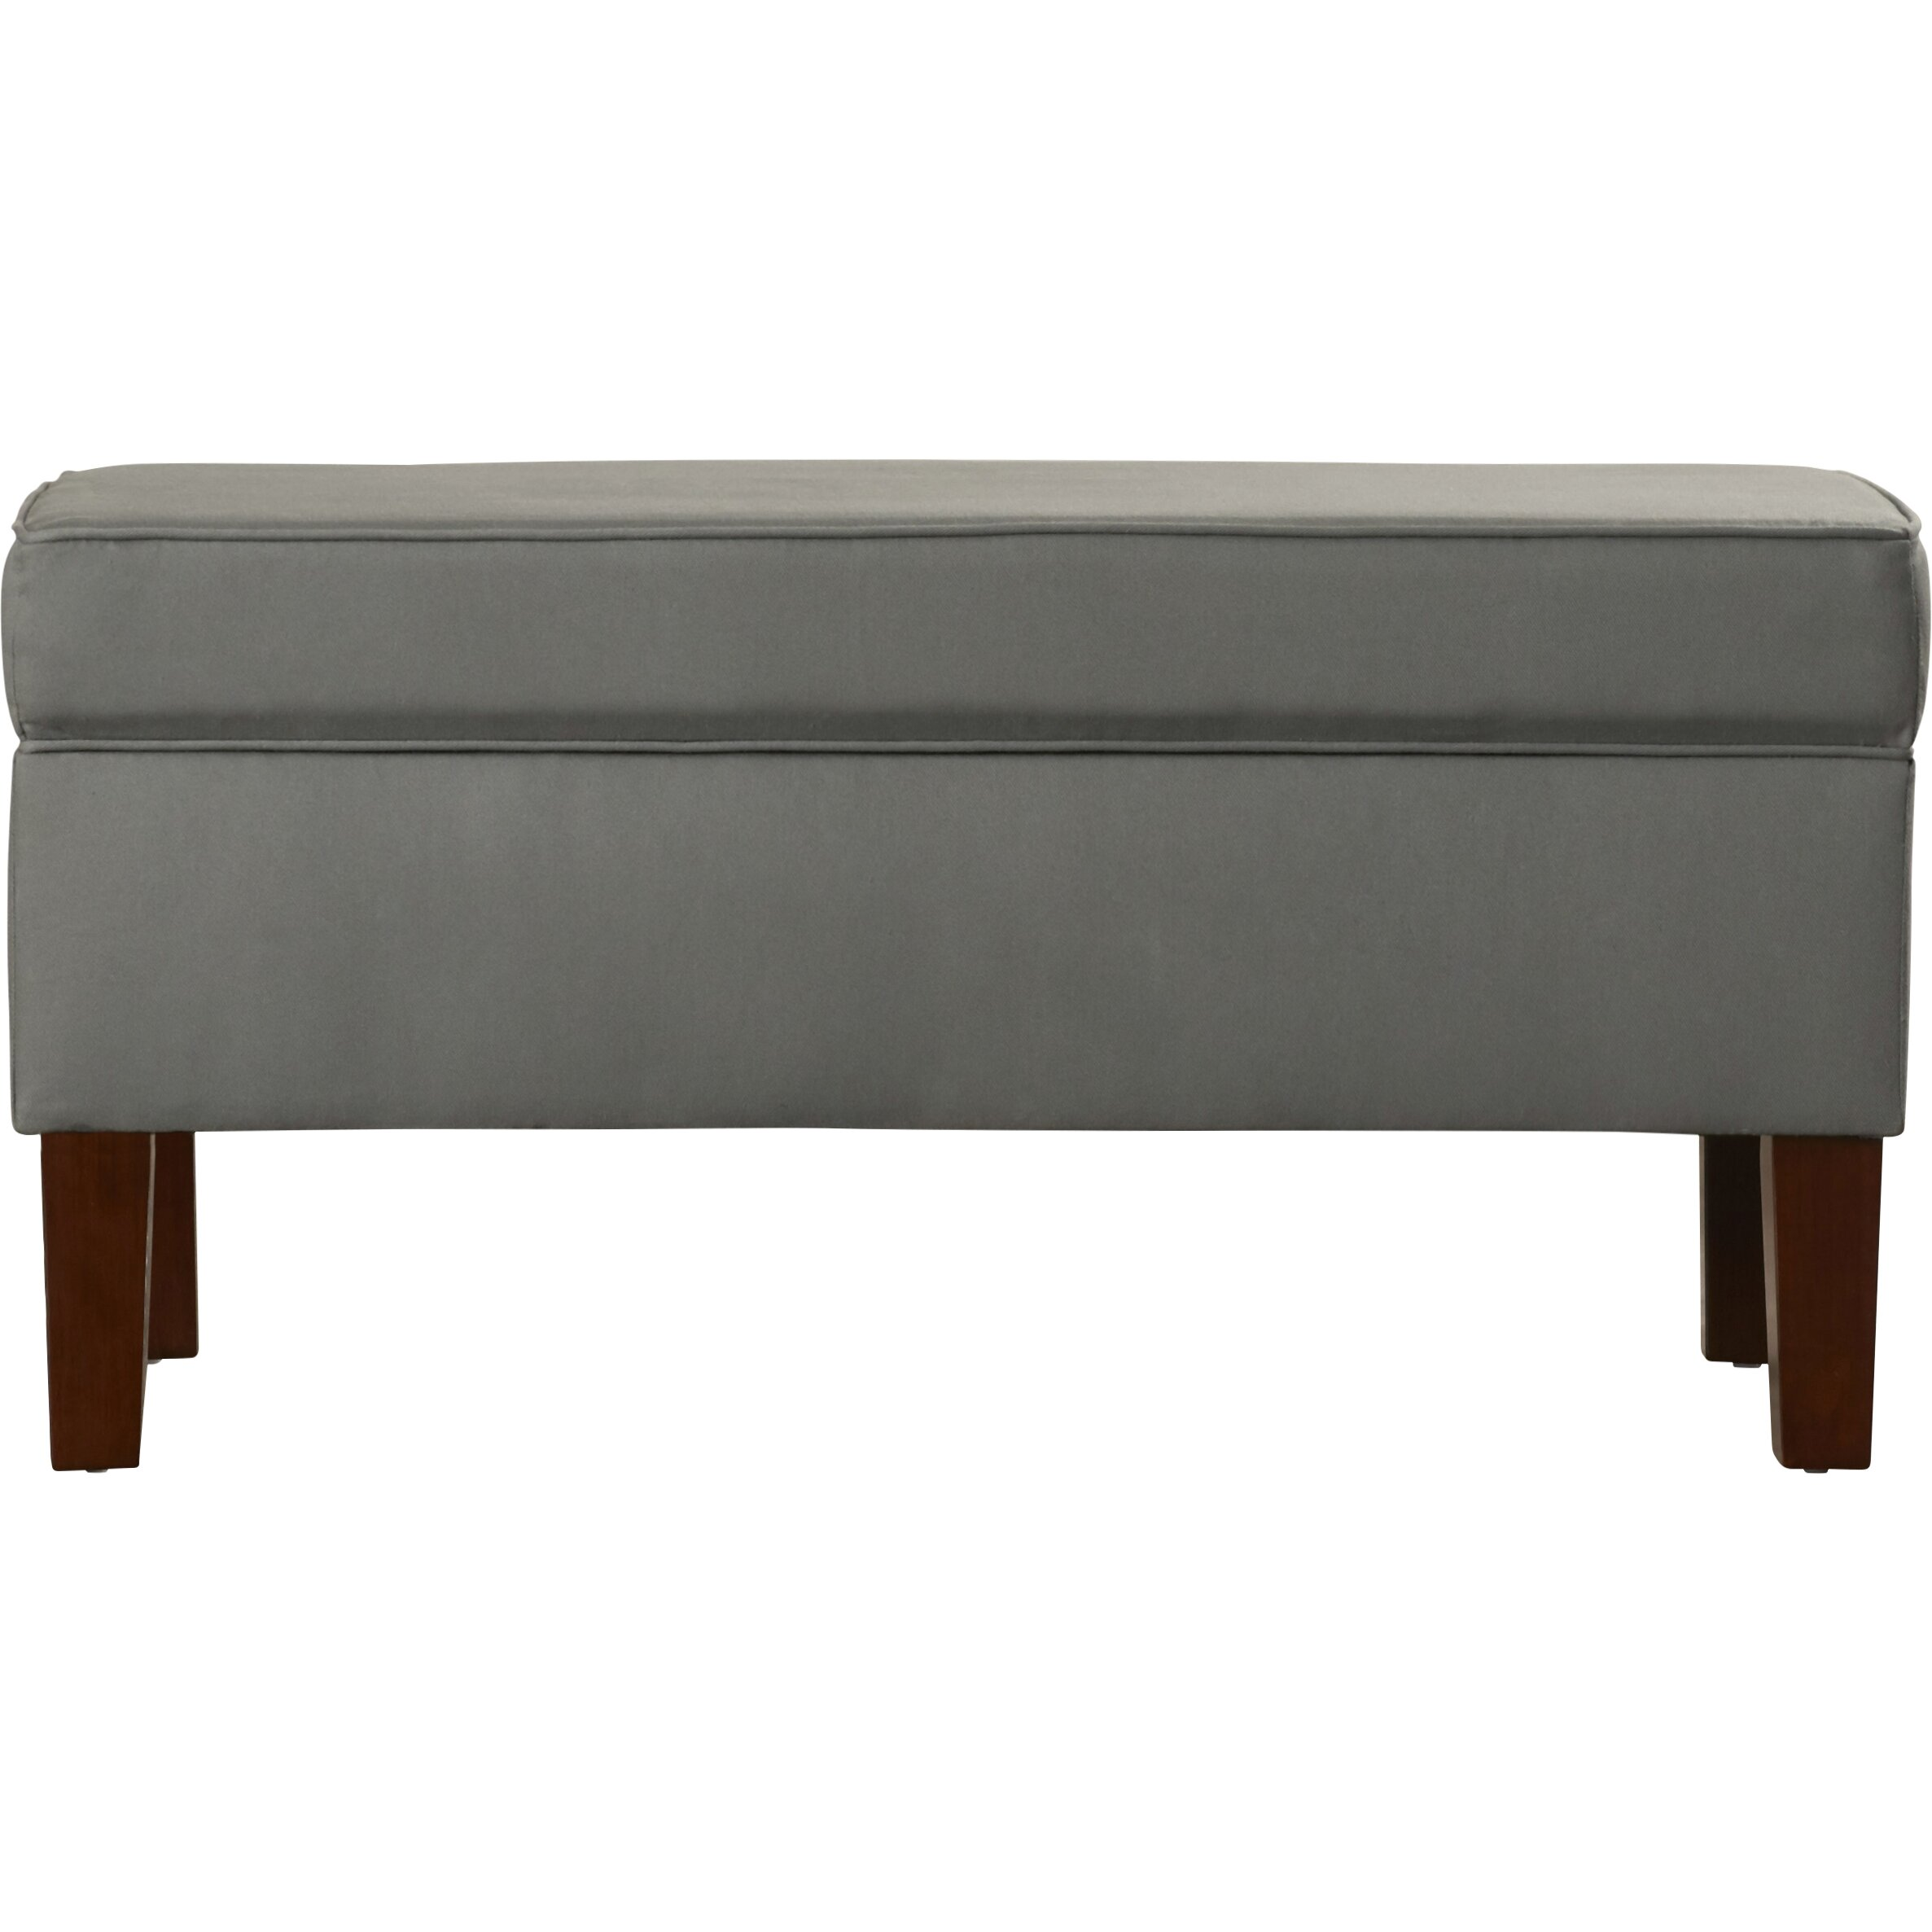 brayden studio storage bedroom bench reviews wayfair